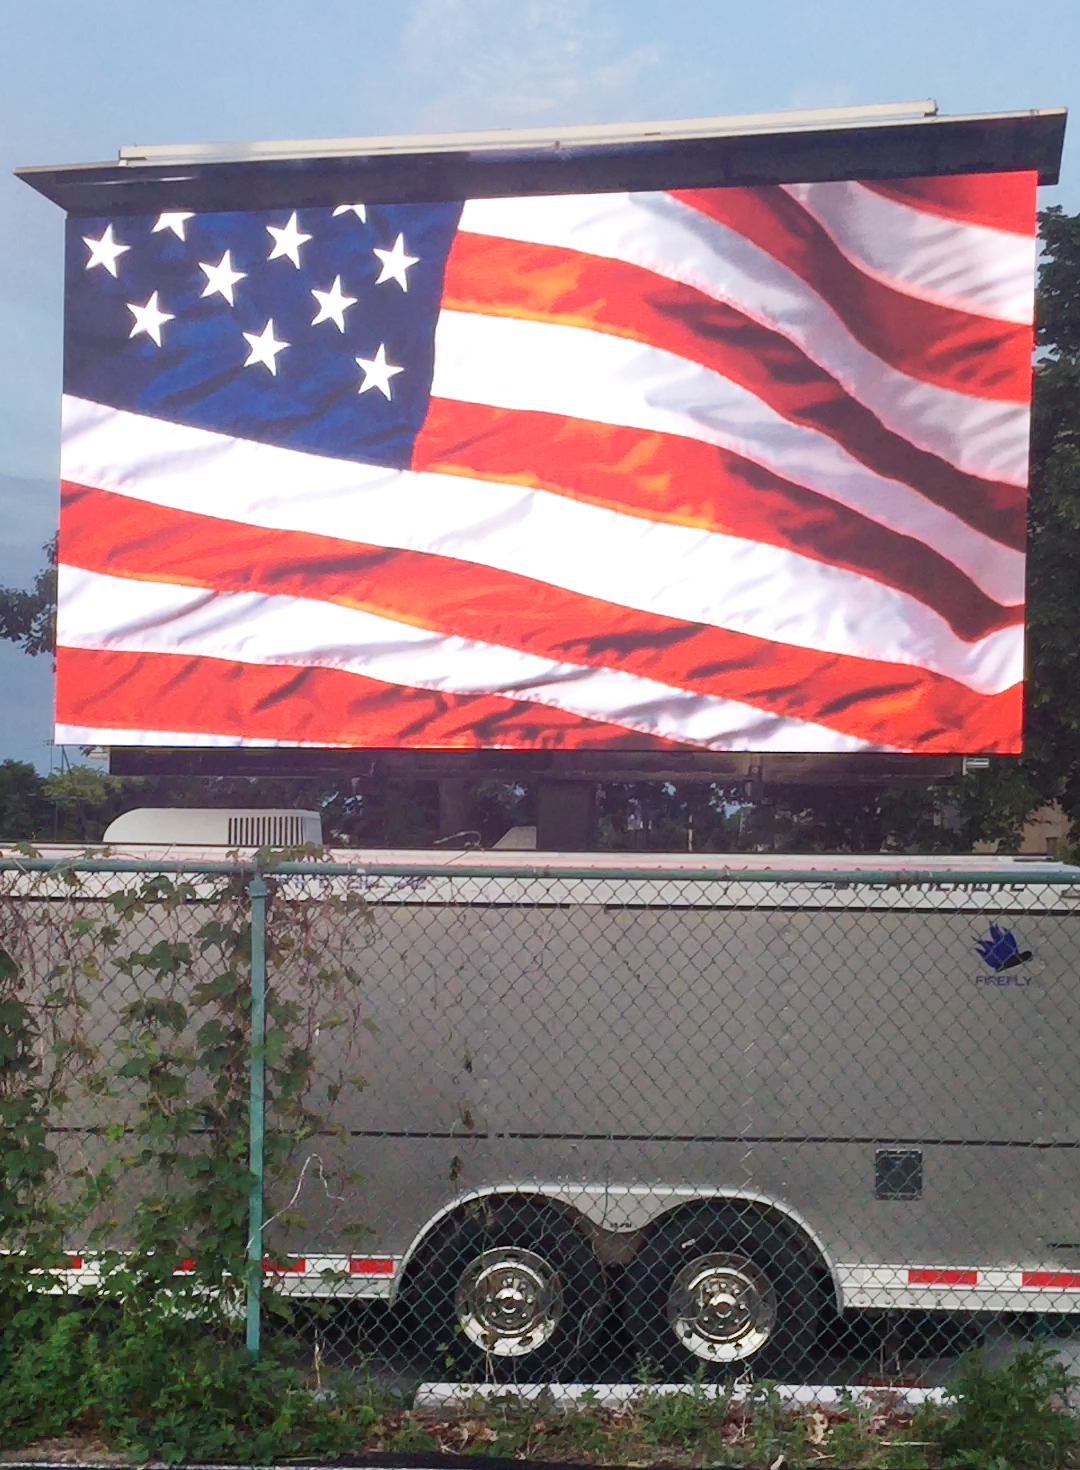 led mobile video screen jumbotron rental for outdoor events